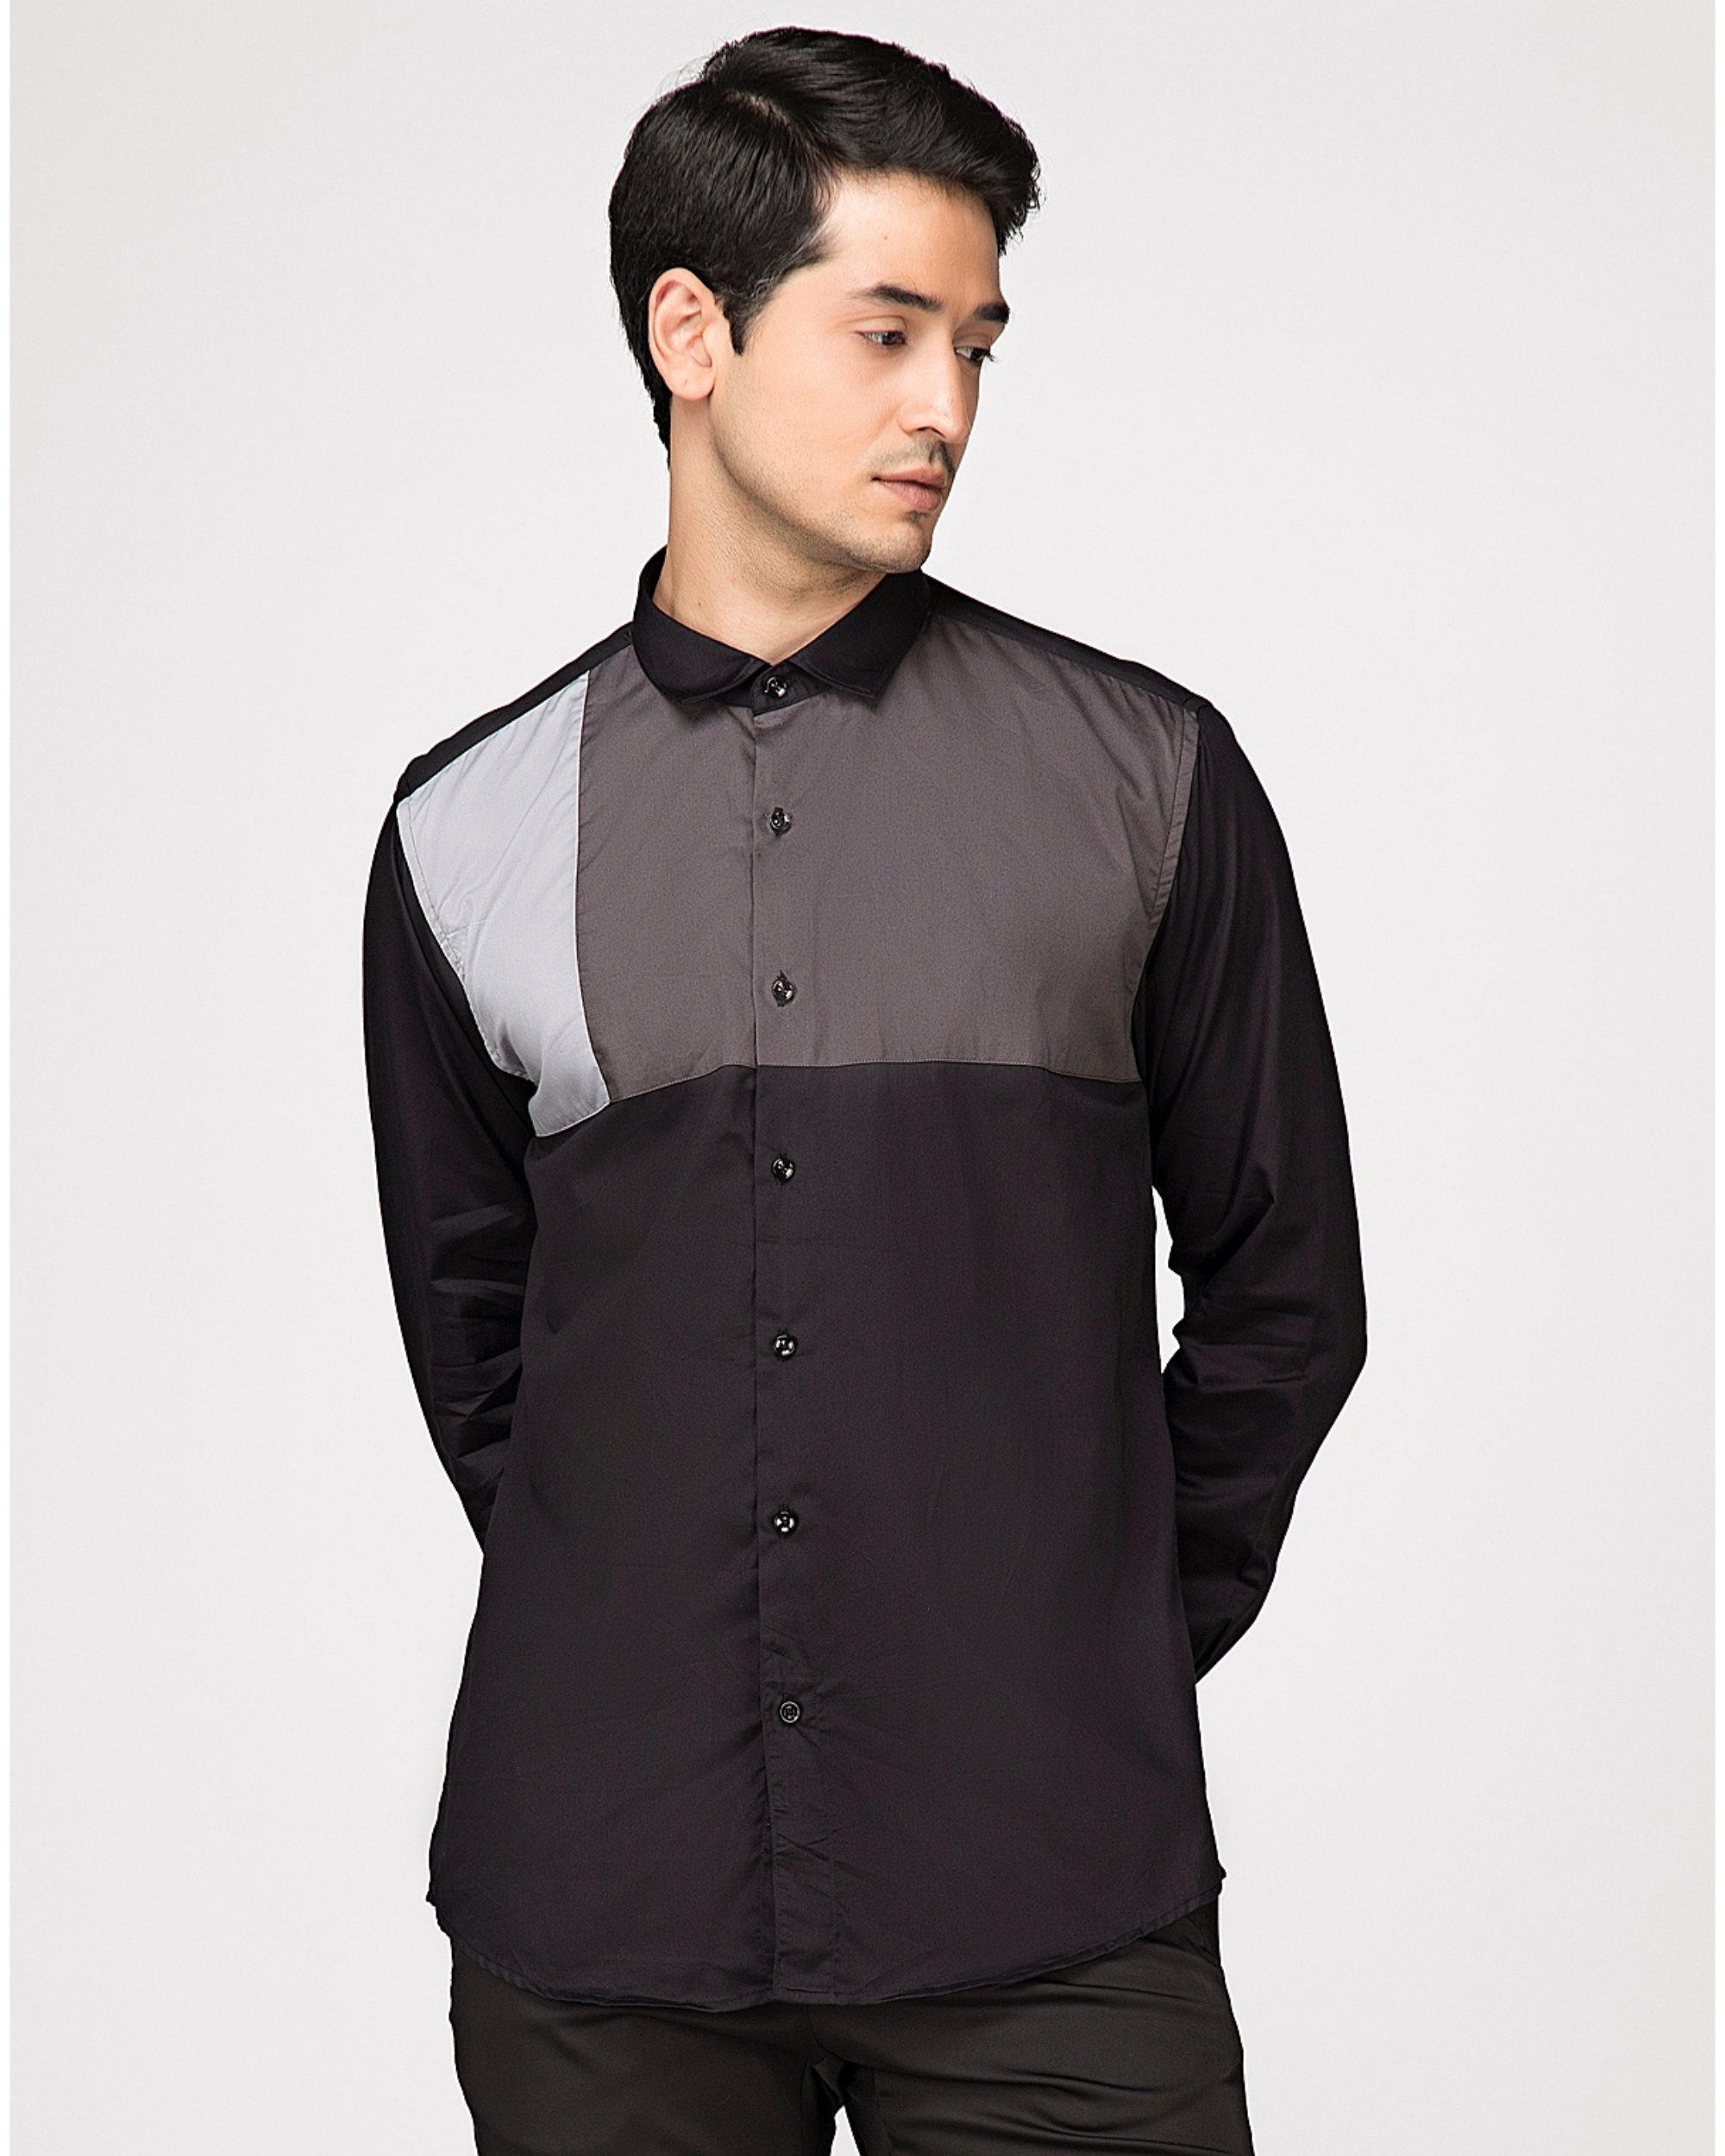 Black and grey block paneled shirt